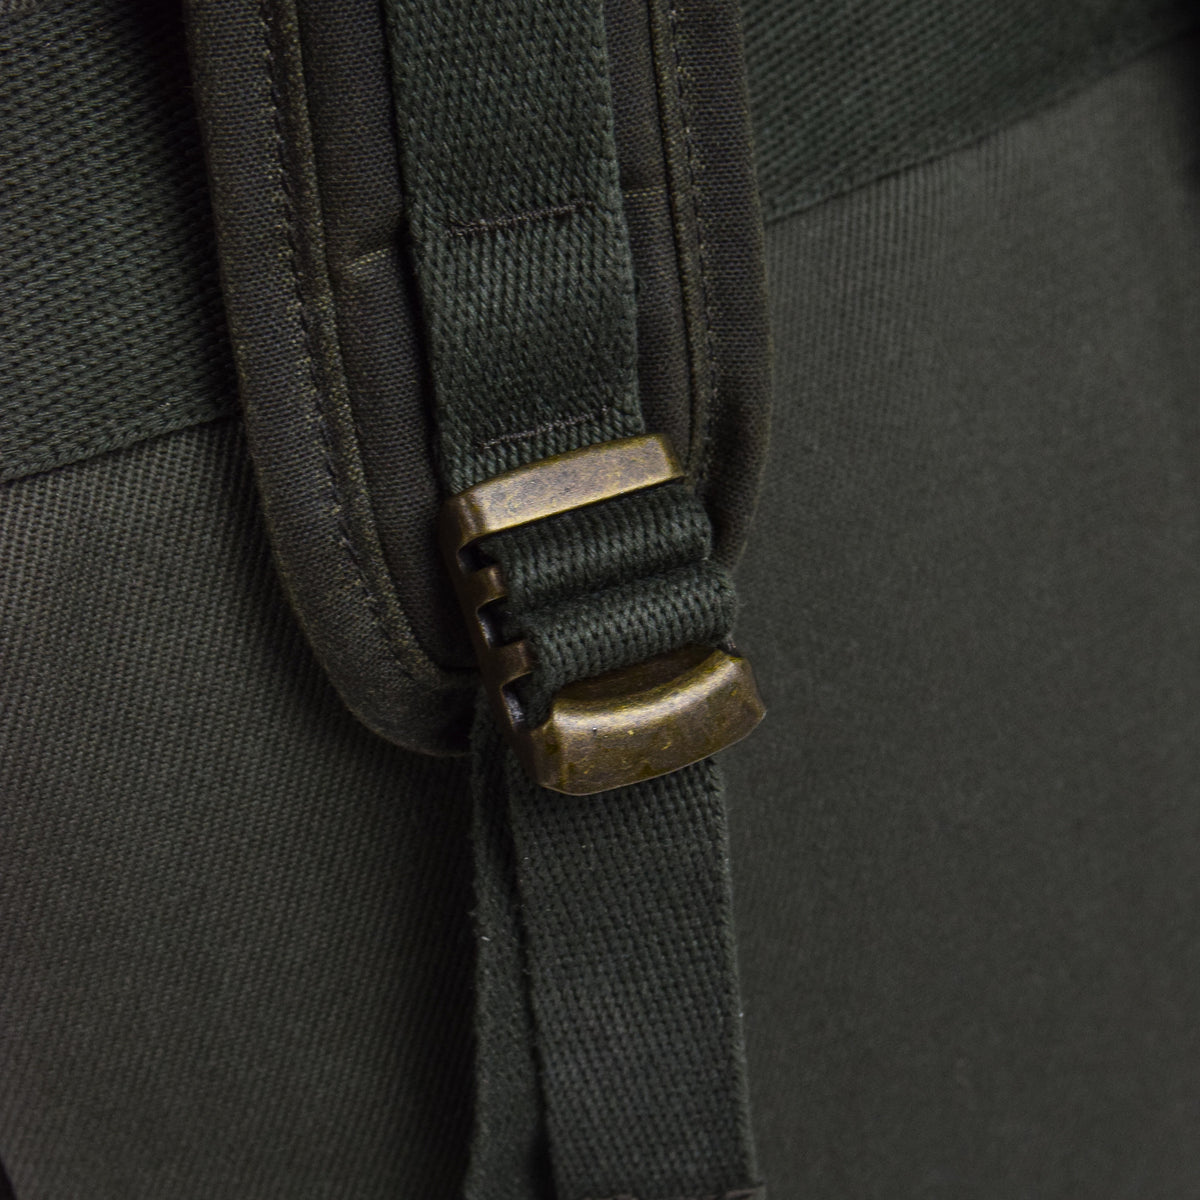 Filson Rugged Twill Ranger Backpack Otter Green Strap Detail